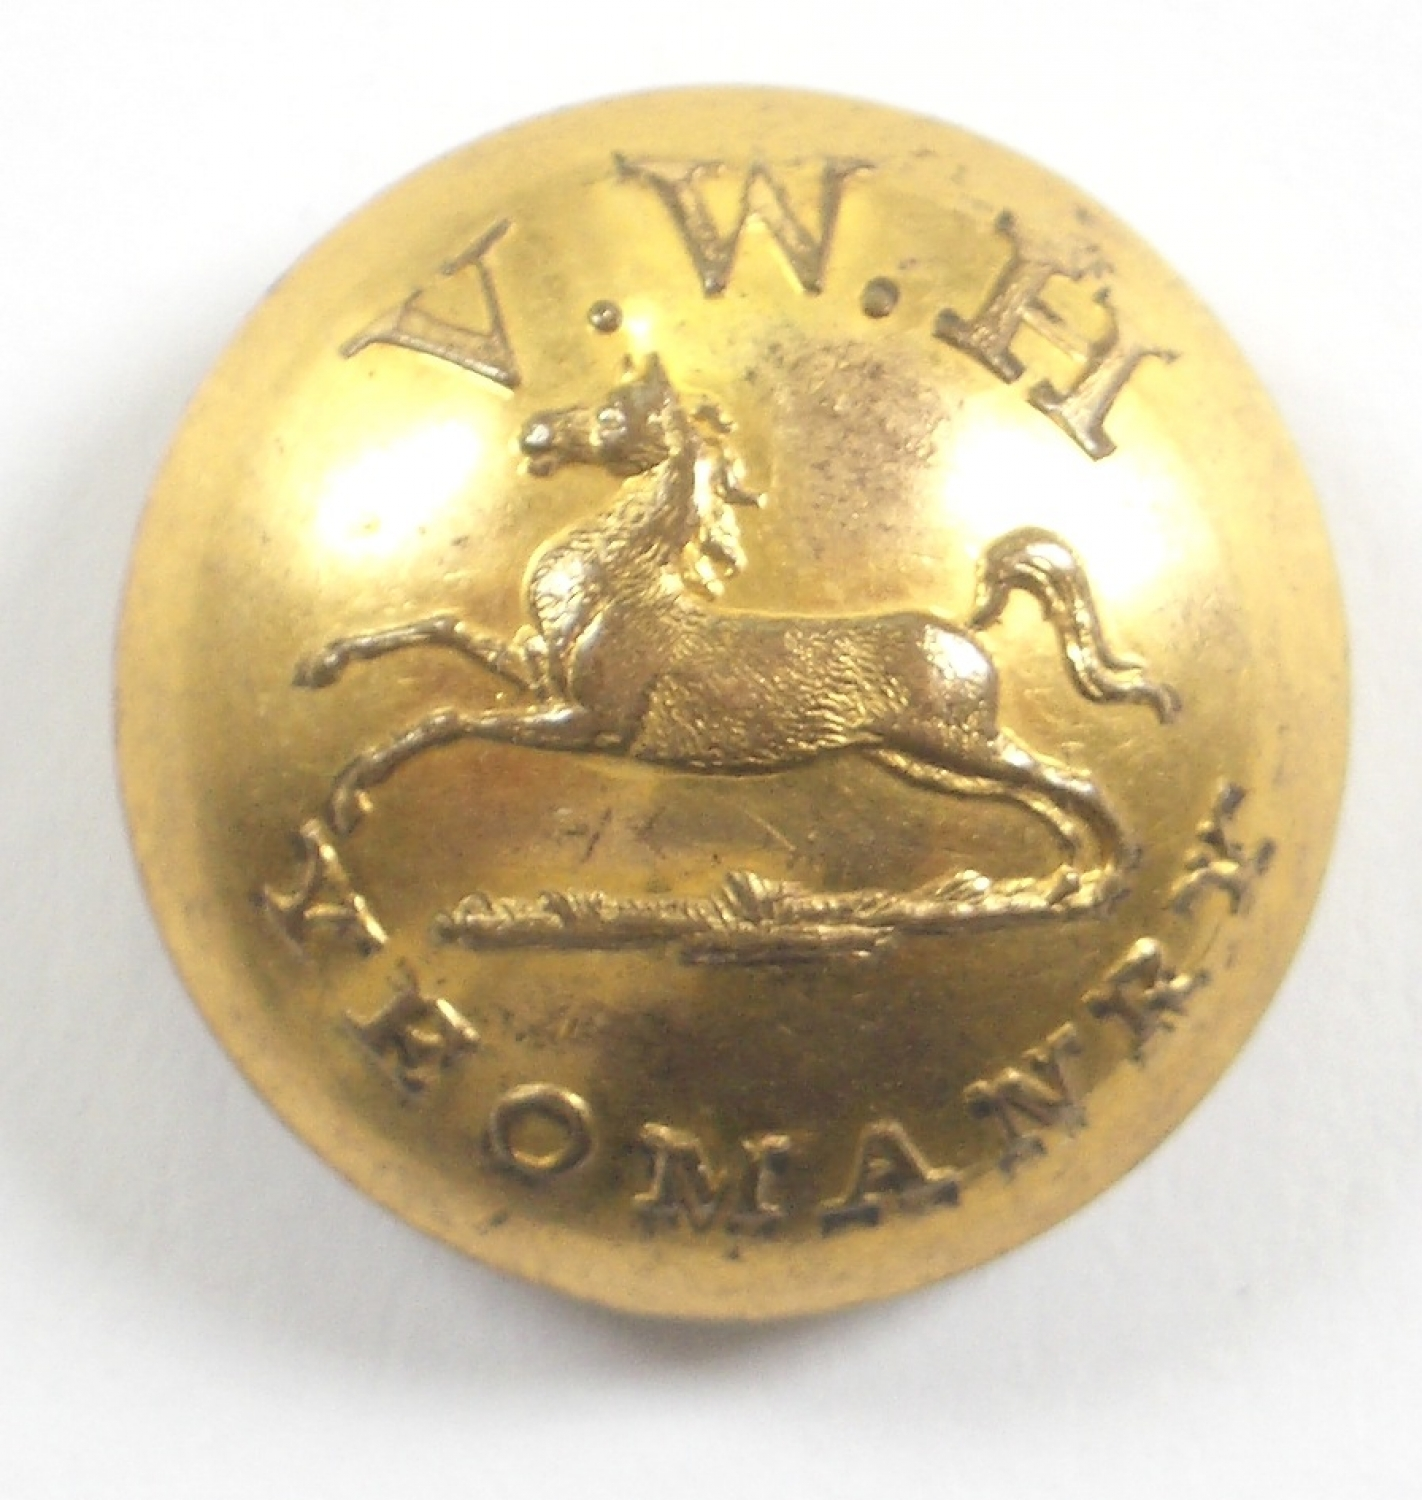 Vale of White Horse Yeomanry button